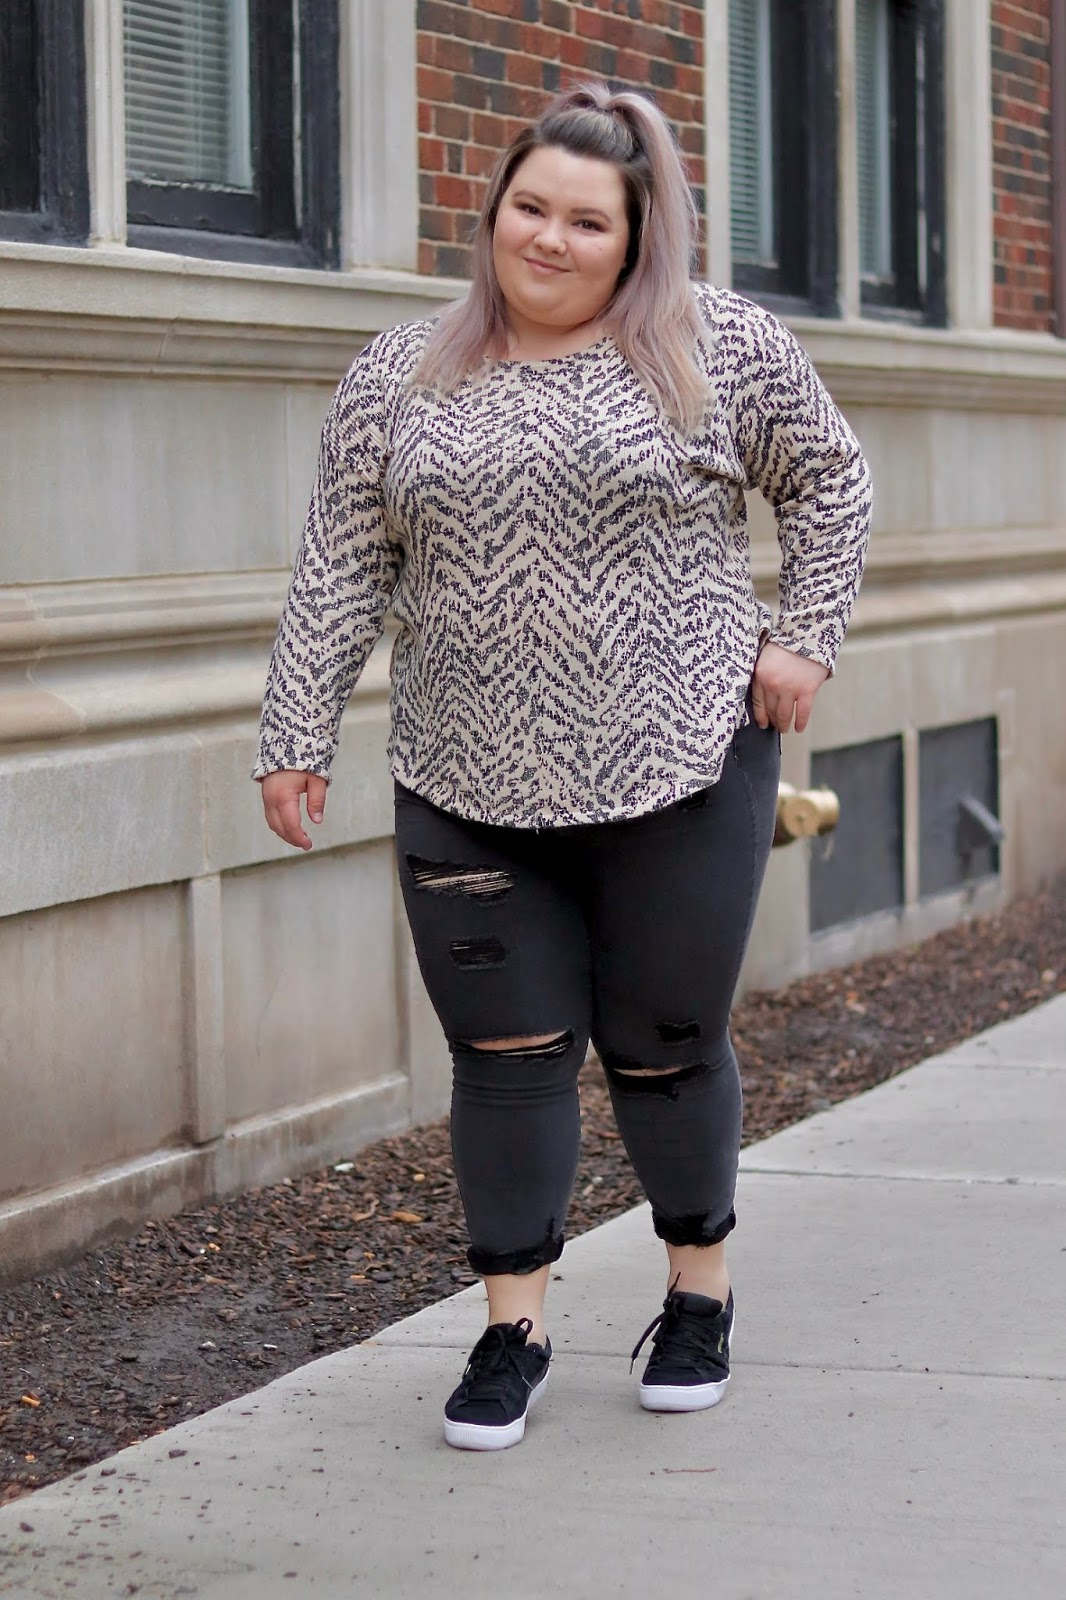 Plus size fashion blogger, model, and YouTuber Natalie Craig shares her favorite summer and spring styles from Gordmans, which just opened 38 new stores!